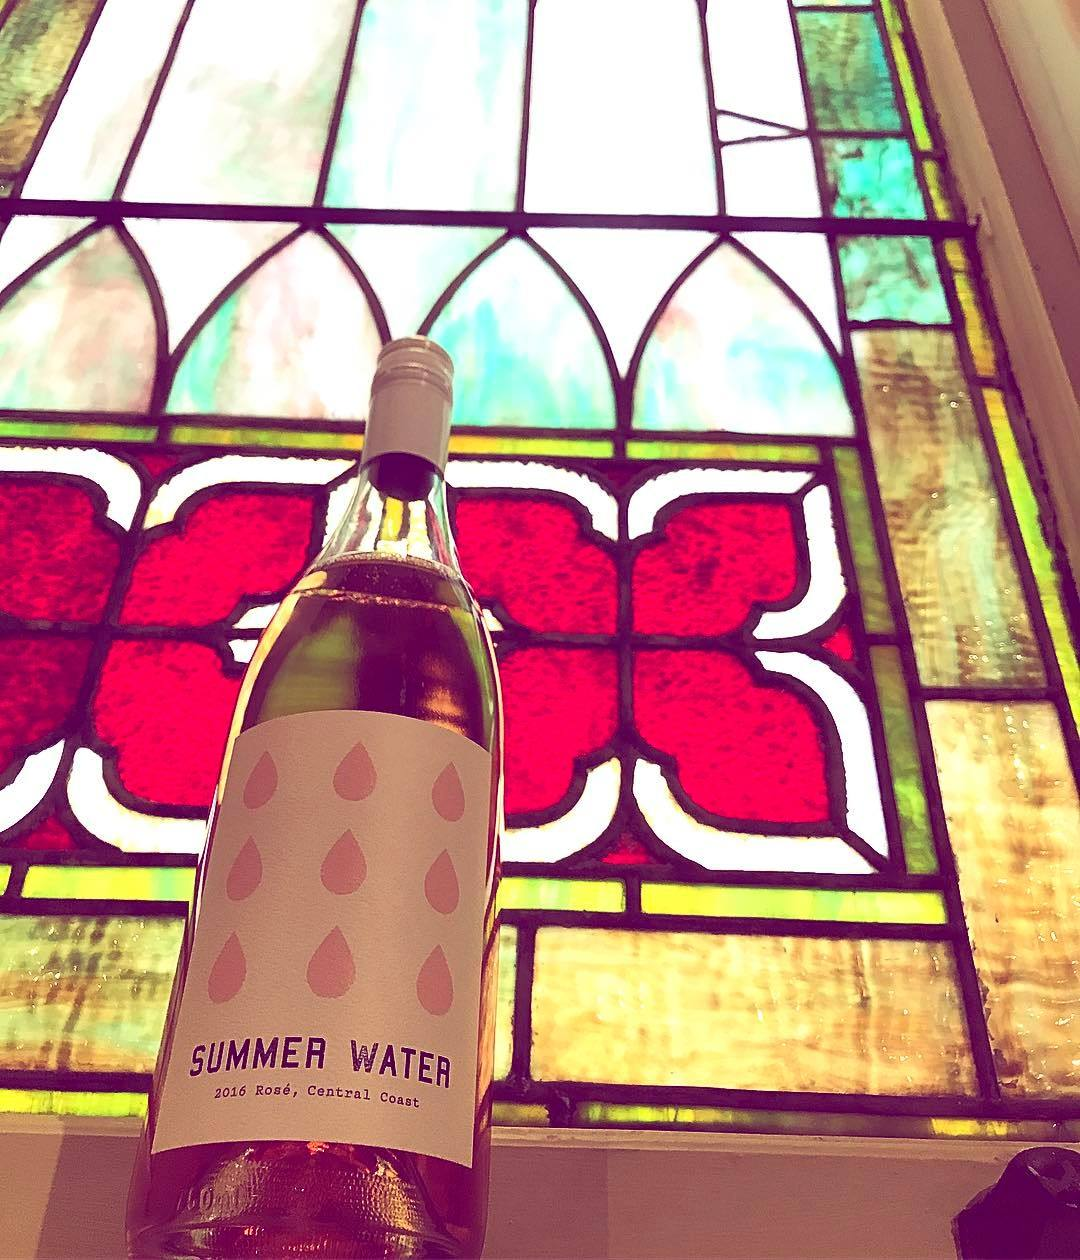 Grace restaurant in Portland is situated inside an old church (@restaurantgrace / Instagram)